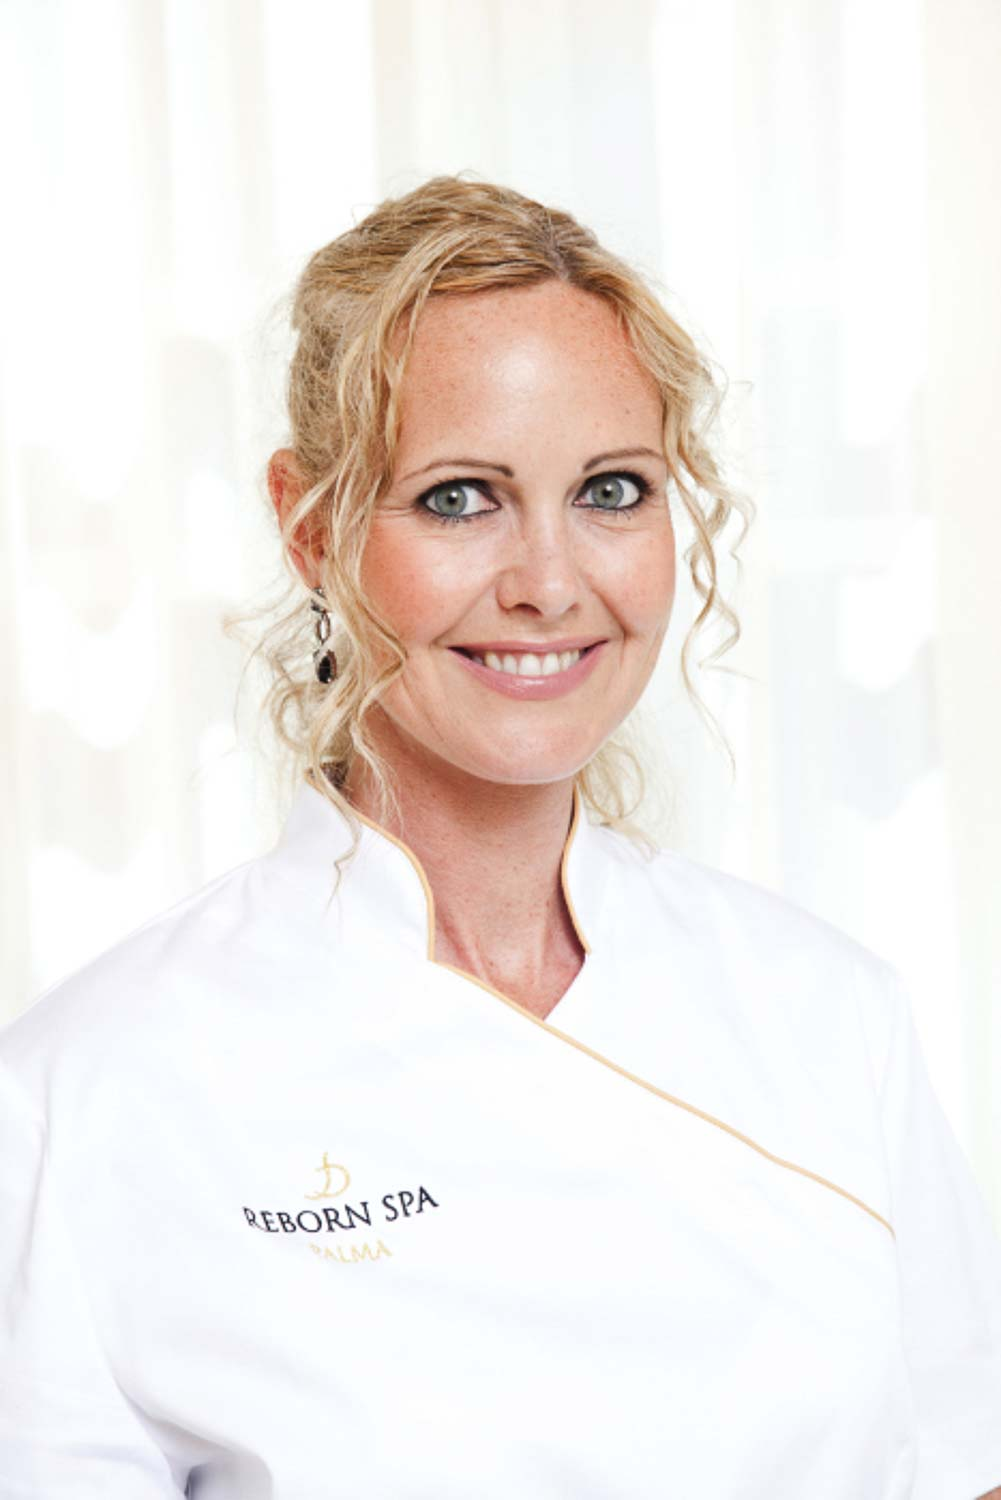 Business Fotografie BeautySpa Portrait - 1453.jpg